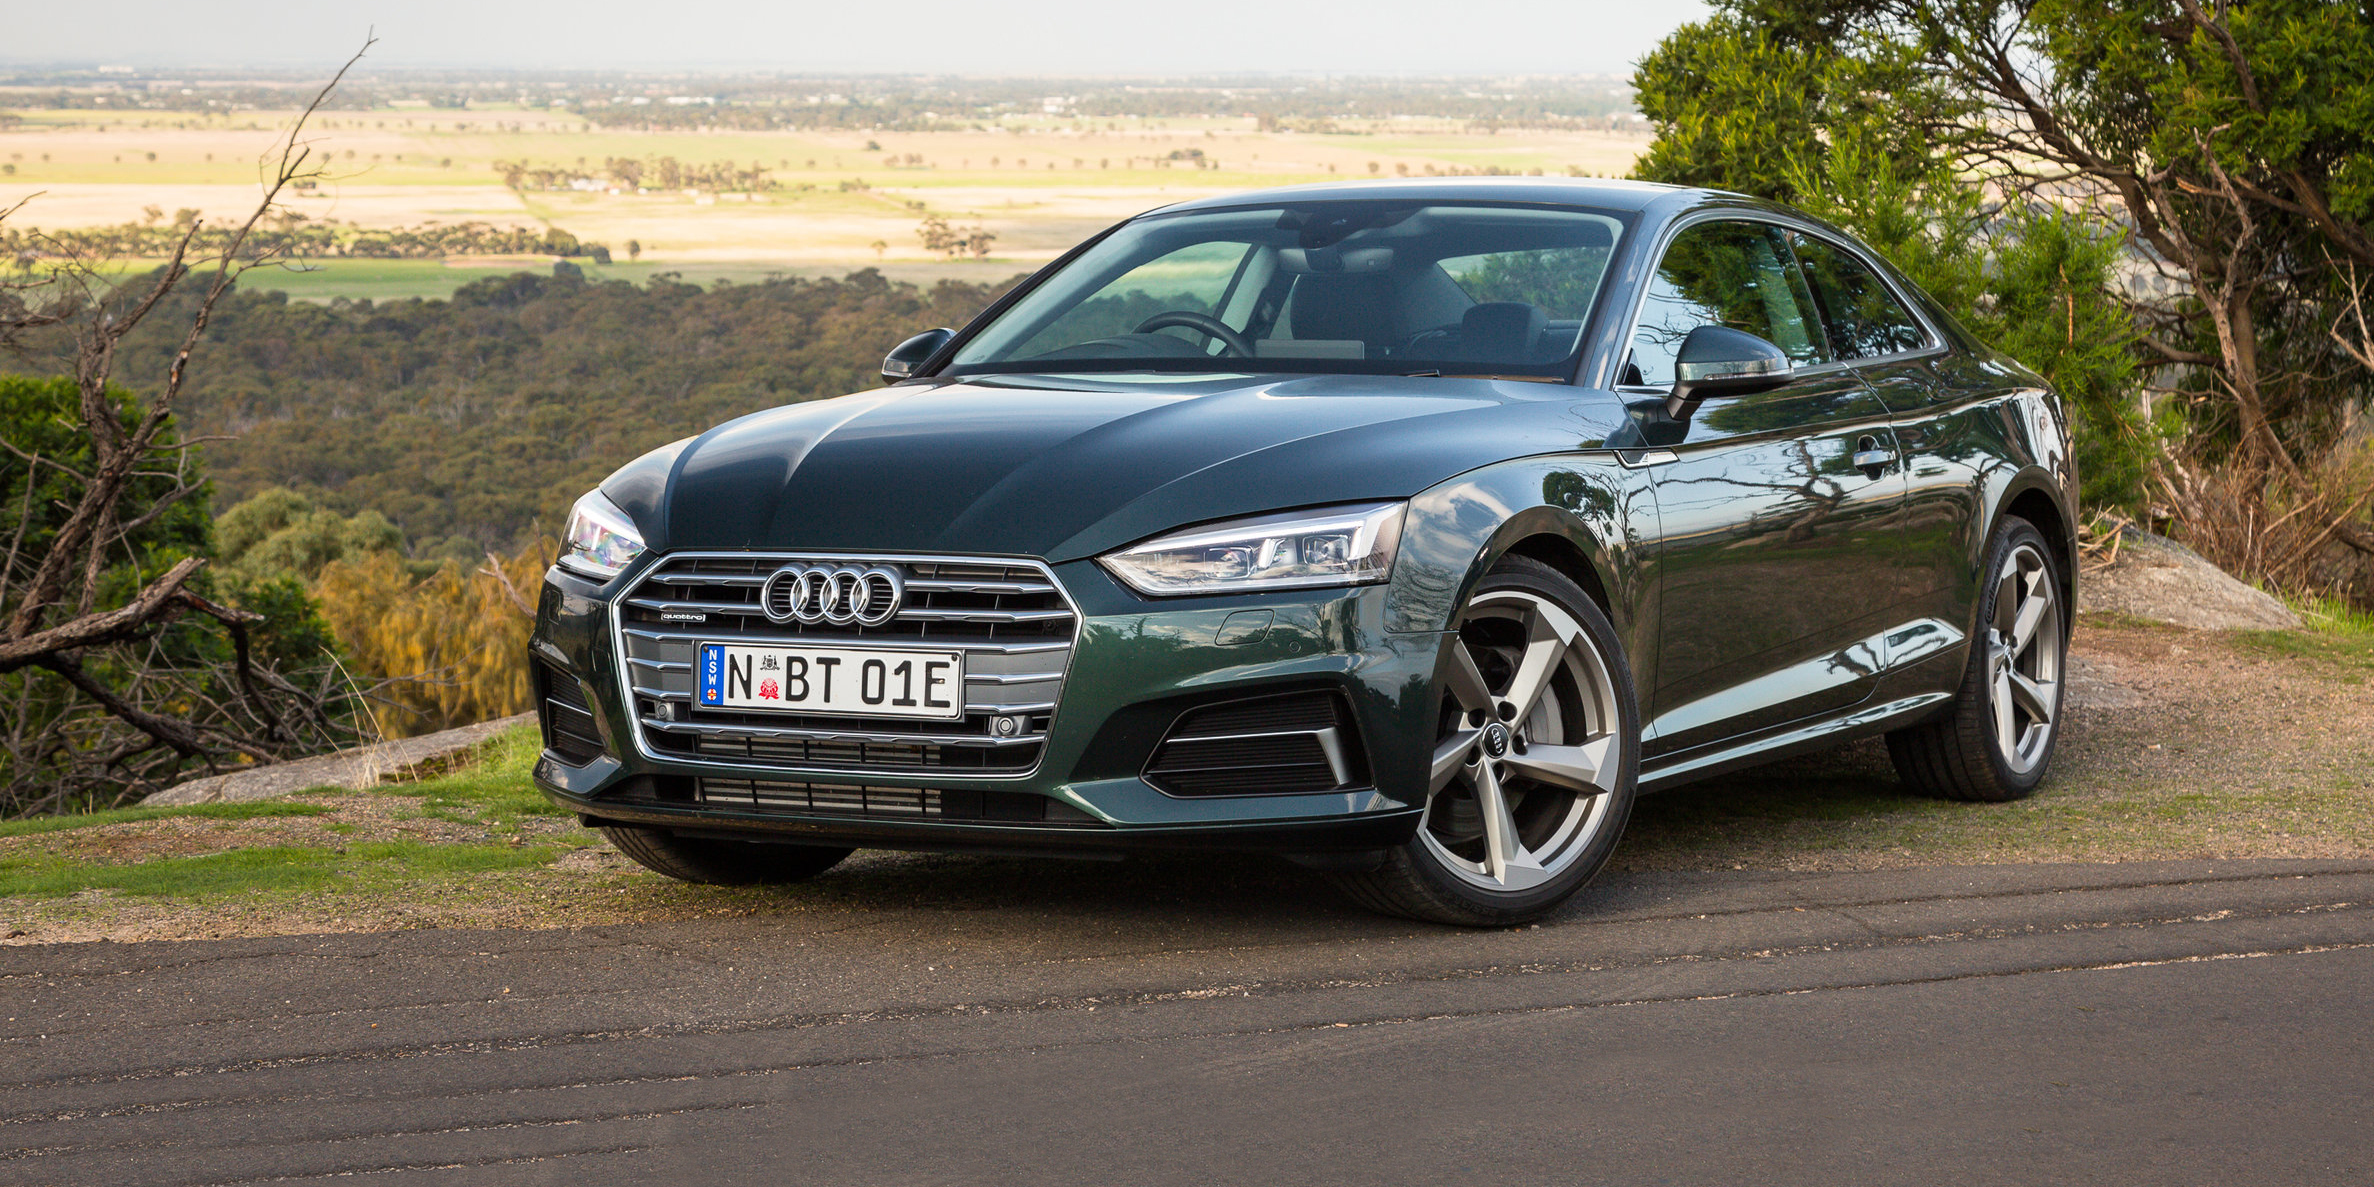 2017 Audi A5 Coupe 2 0 Tfsi Quattro Review Caradvice